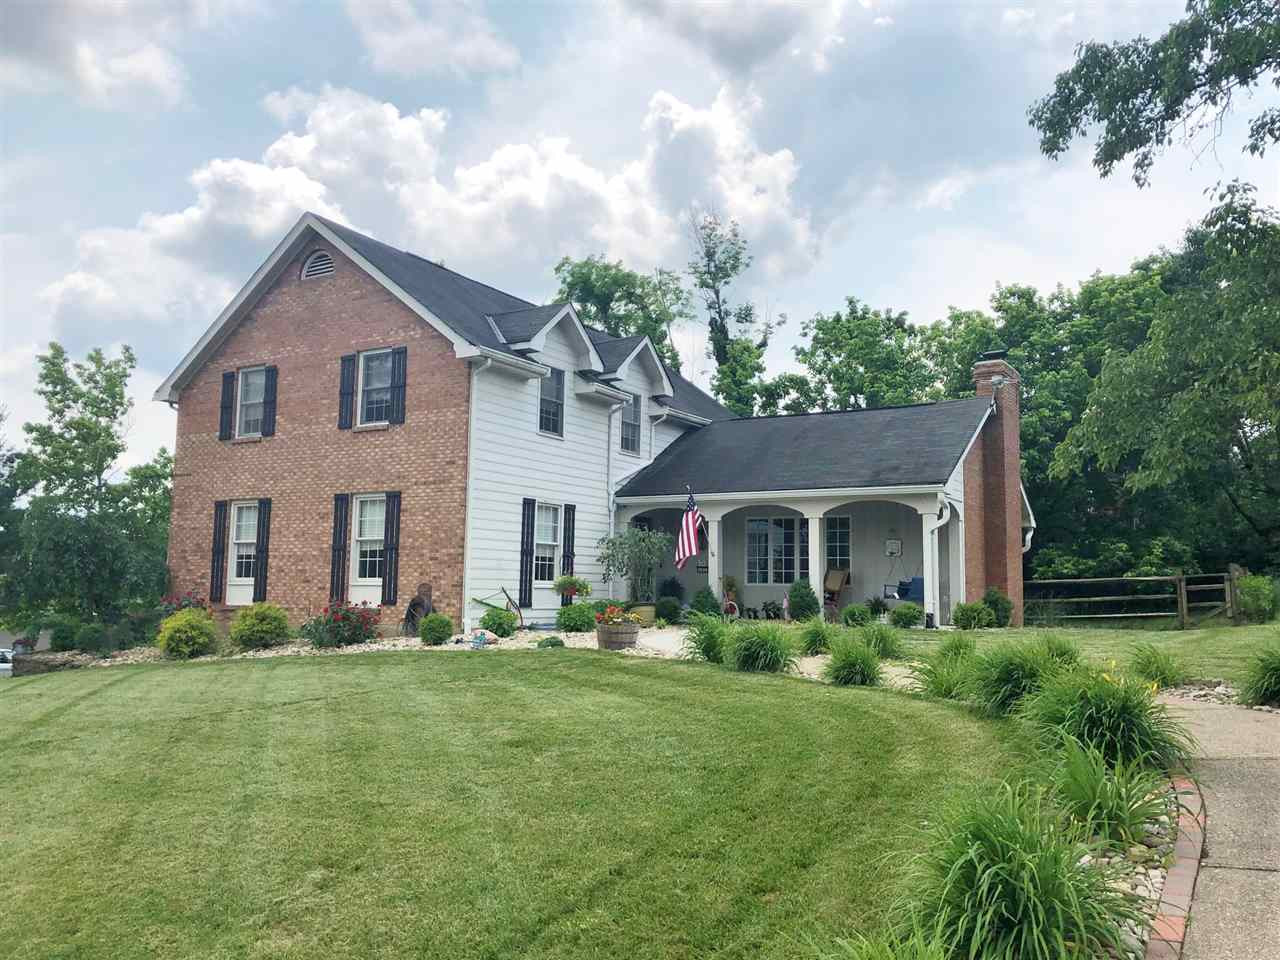 Photo 1 for 423 White Oak Dr Edgewood, KY 41017